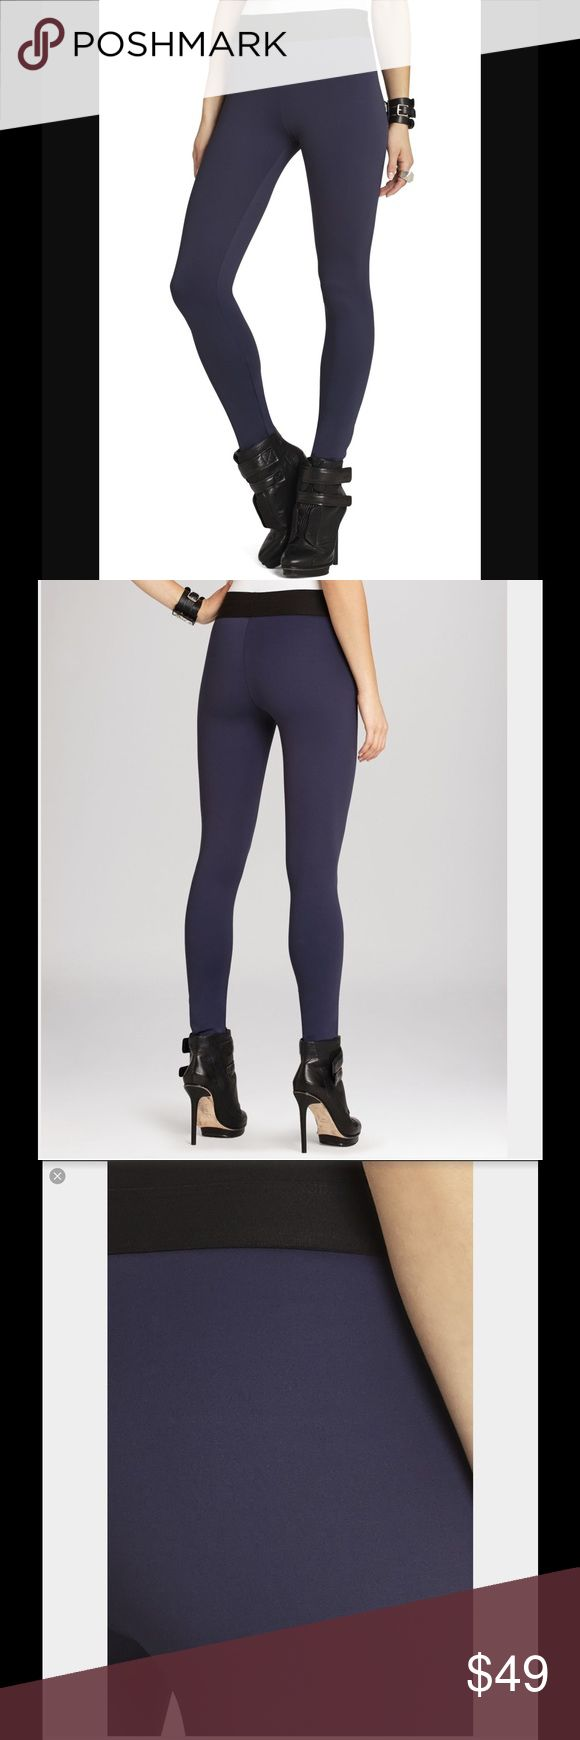 "BCBG Mason Navy Blue Skinny Pant Leggings sz XS High waist, pull-on, size XS, fabric: 77% rayon/18% nylon/5% spandex ponte, washable, color: navy, new with BCBG tag that says ""returns not excepted without this tag"" but the main tag (indicating style and price) is not included.  NEEDS TO GO - Will be unlisted Nov 19th!!! BCBG Pants Leggings"